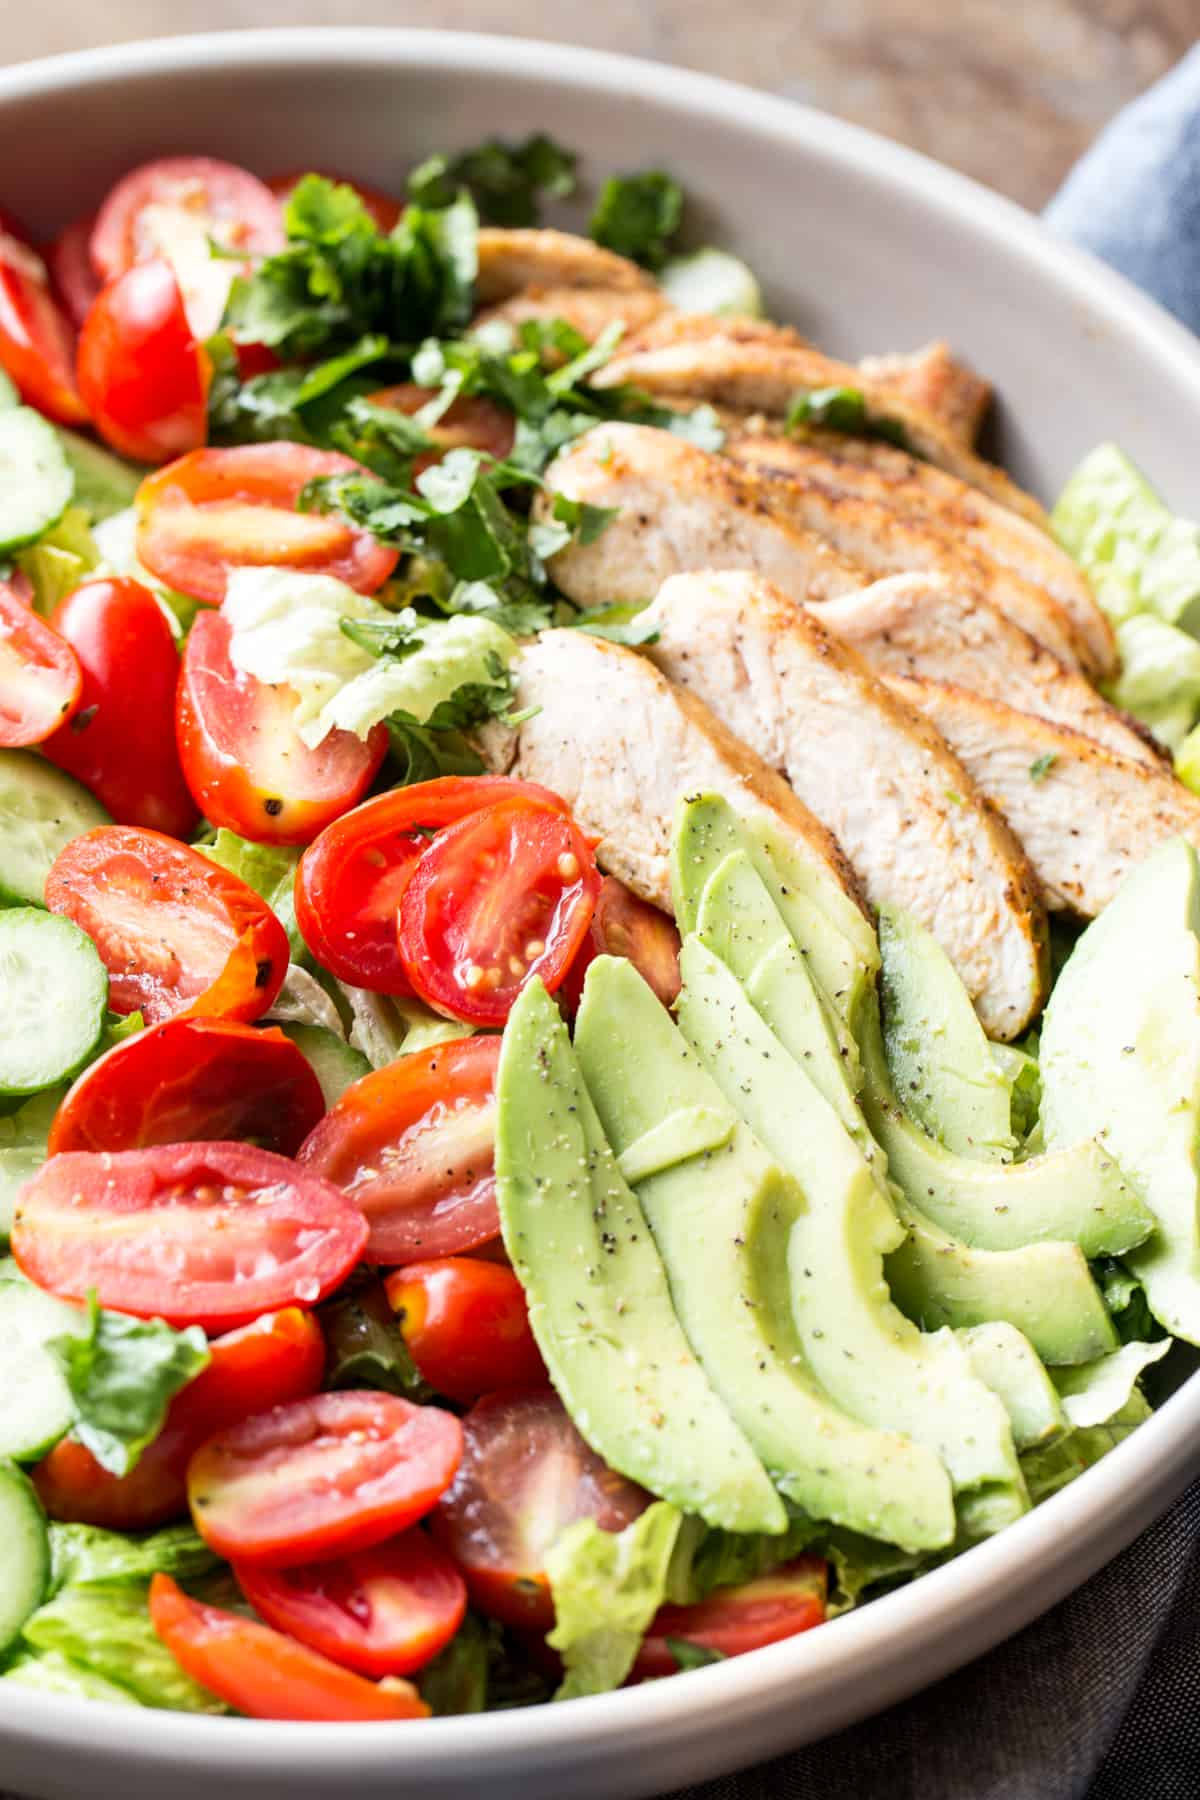 Avocado chicken salad in a bowl with tomatoes, romaine, and cucmbers.